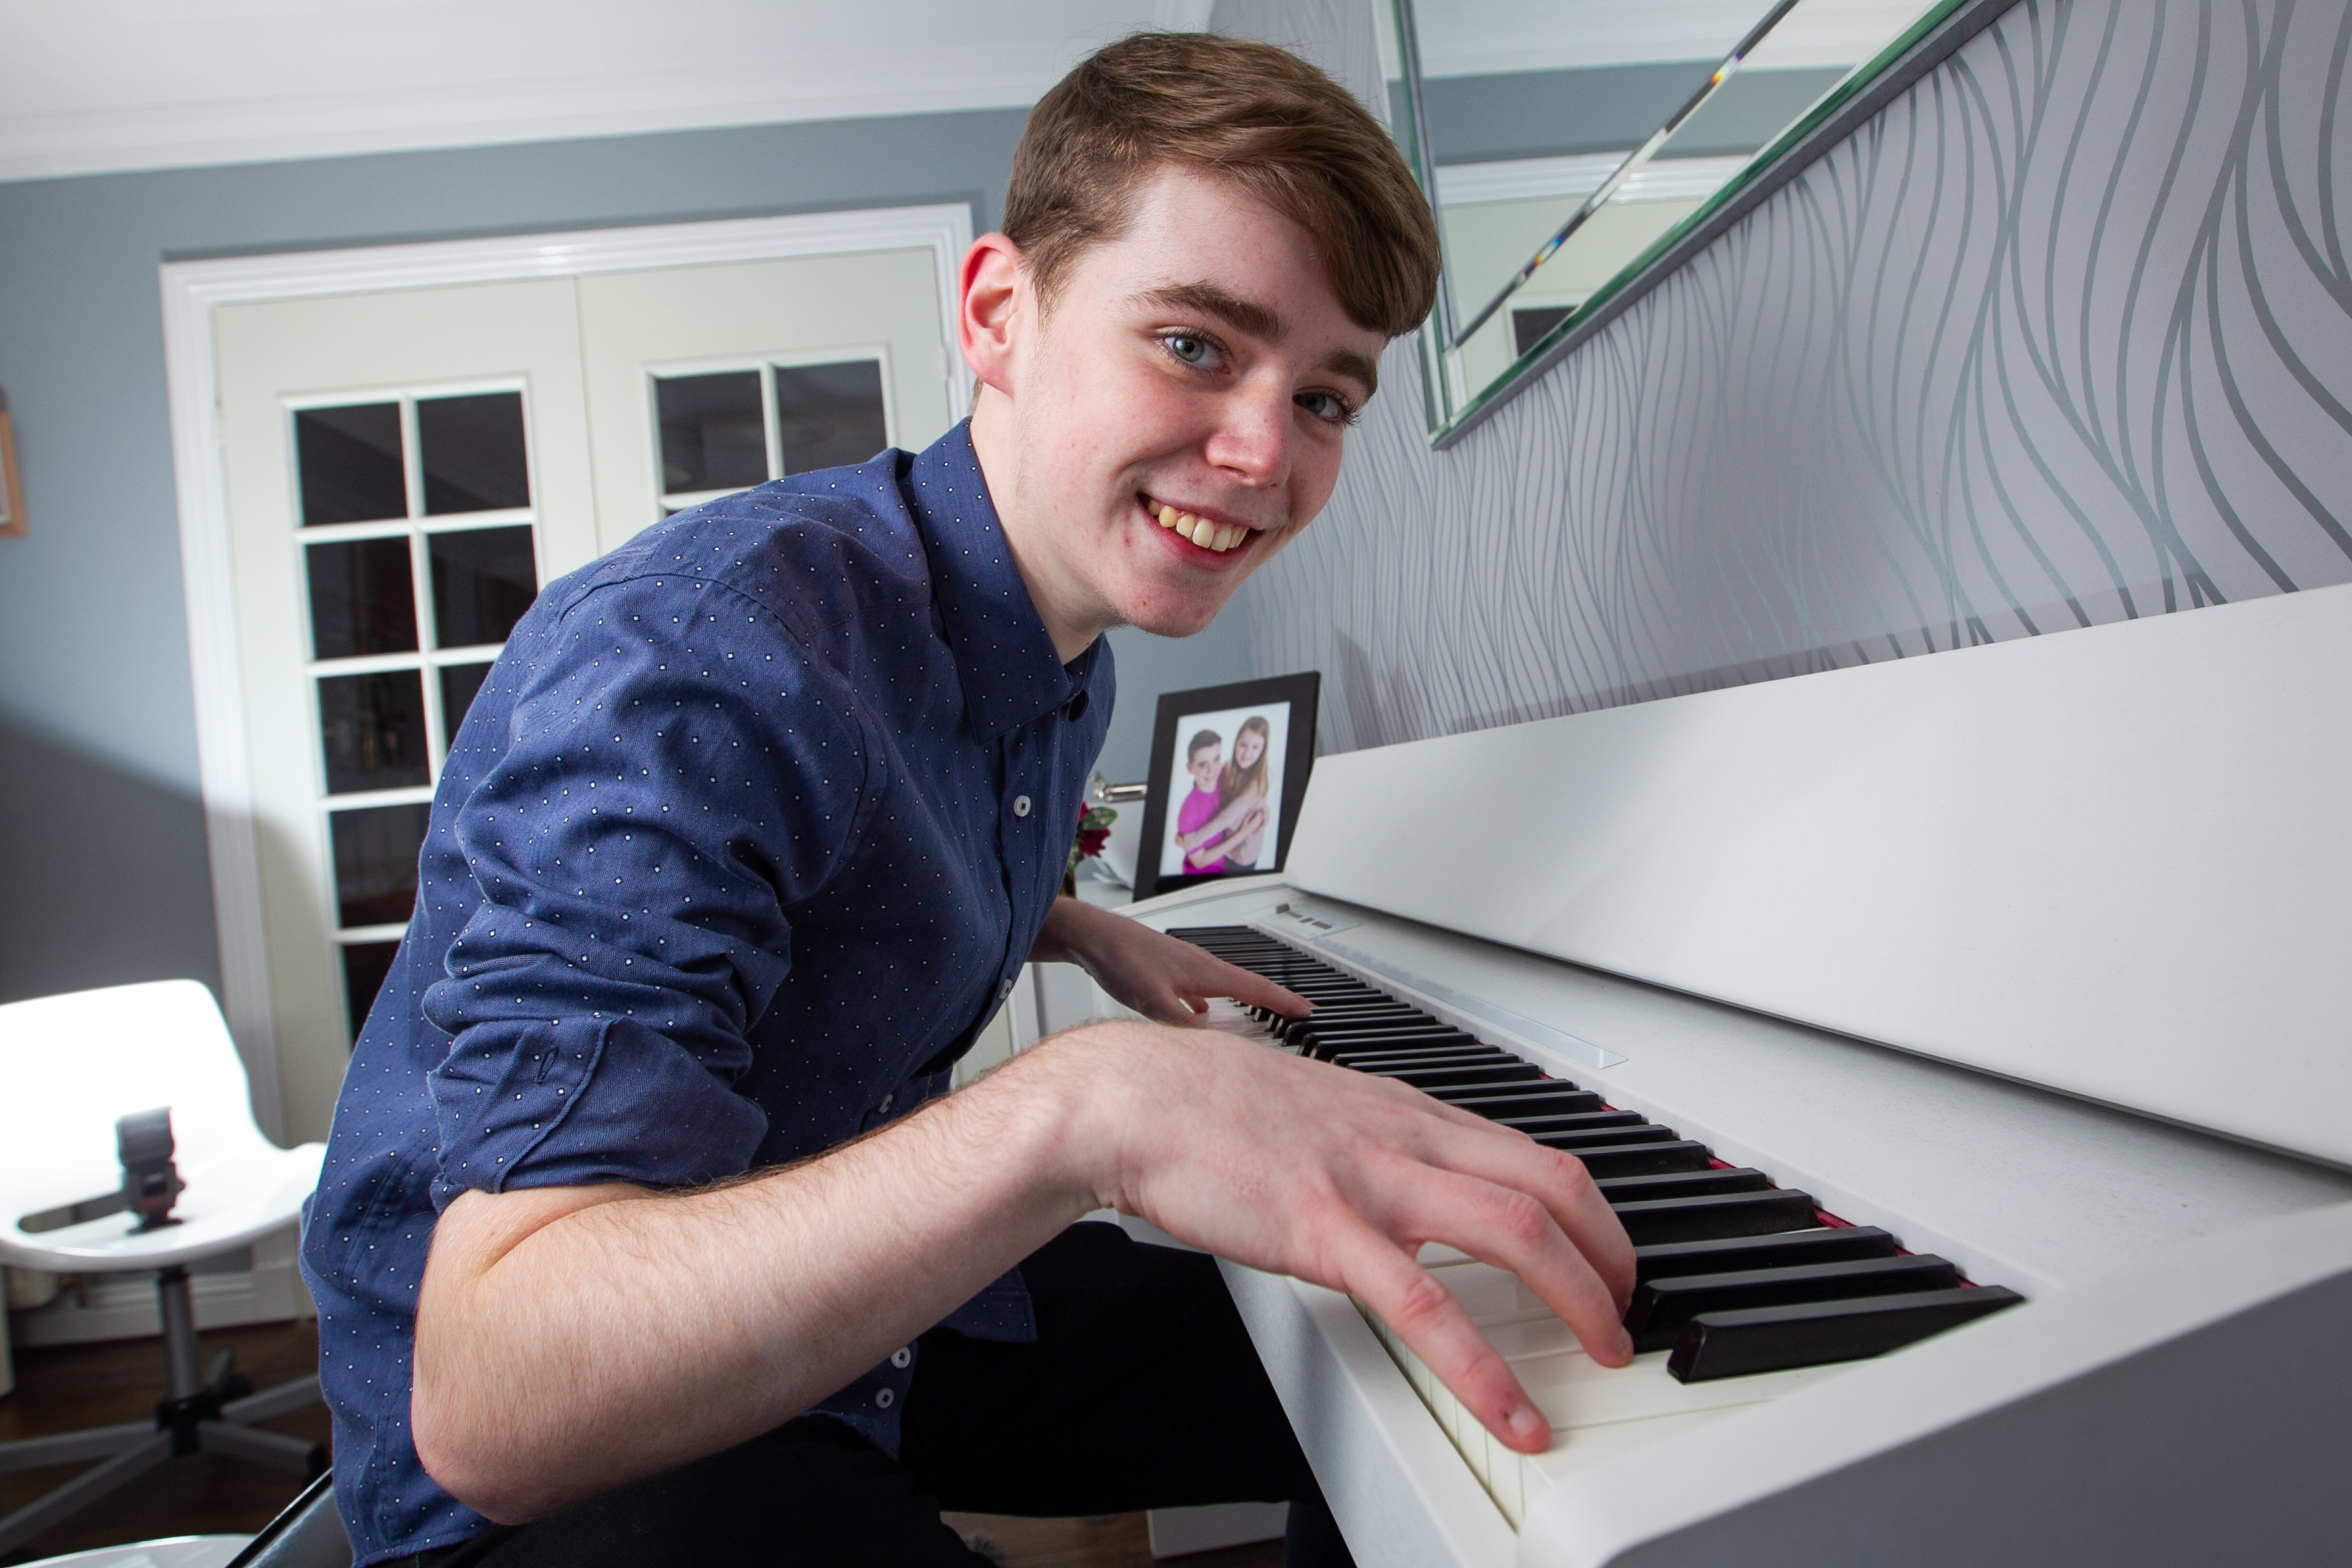 Brandon Stein, the teenager who plays a young Elton John in the new John Lewis Christmas advert. (Andrew Cawley).